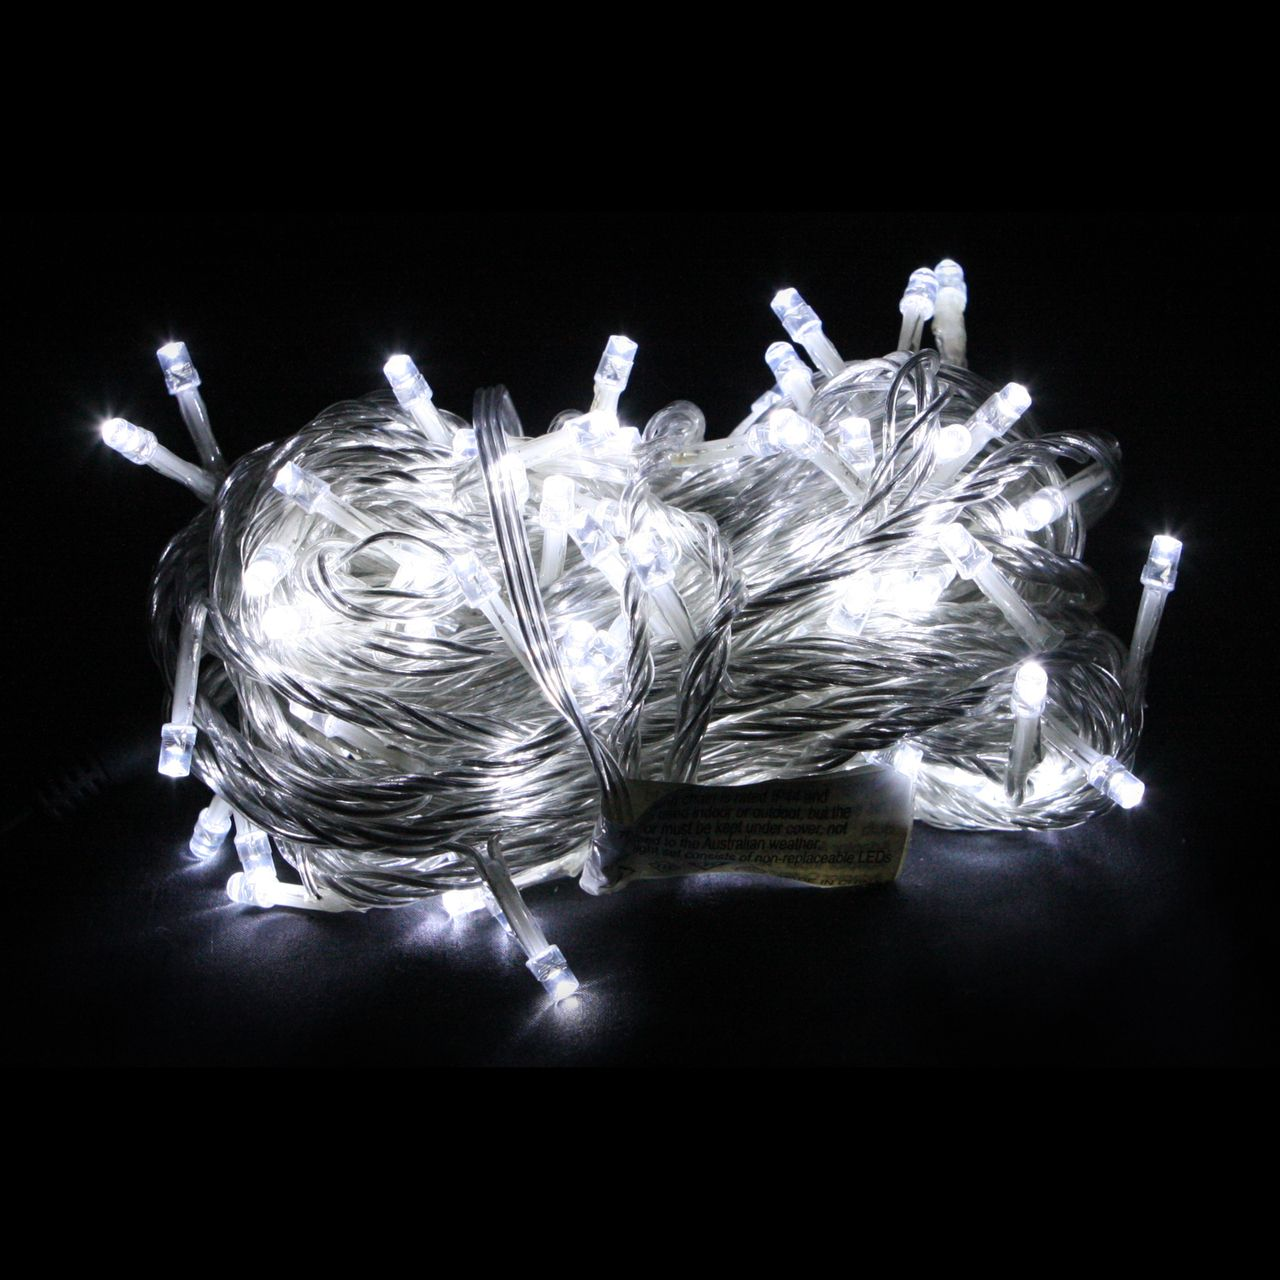 100pc Connectable LED Fairy Lights - White with Clear Wire ...